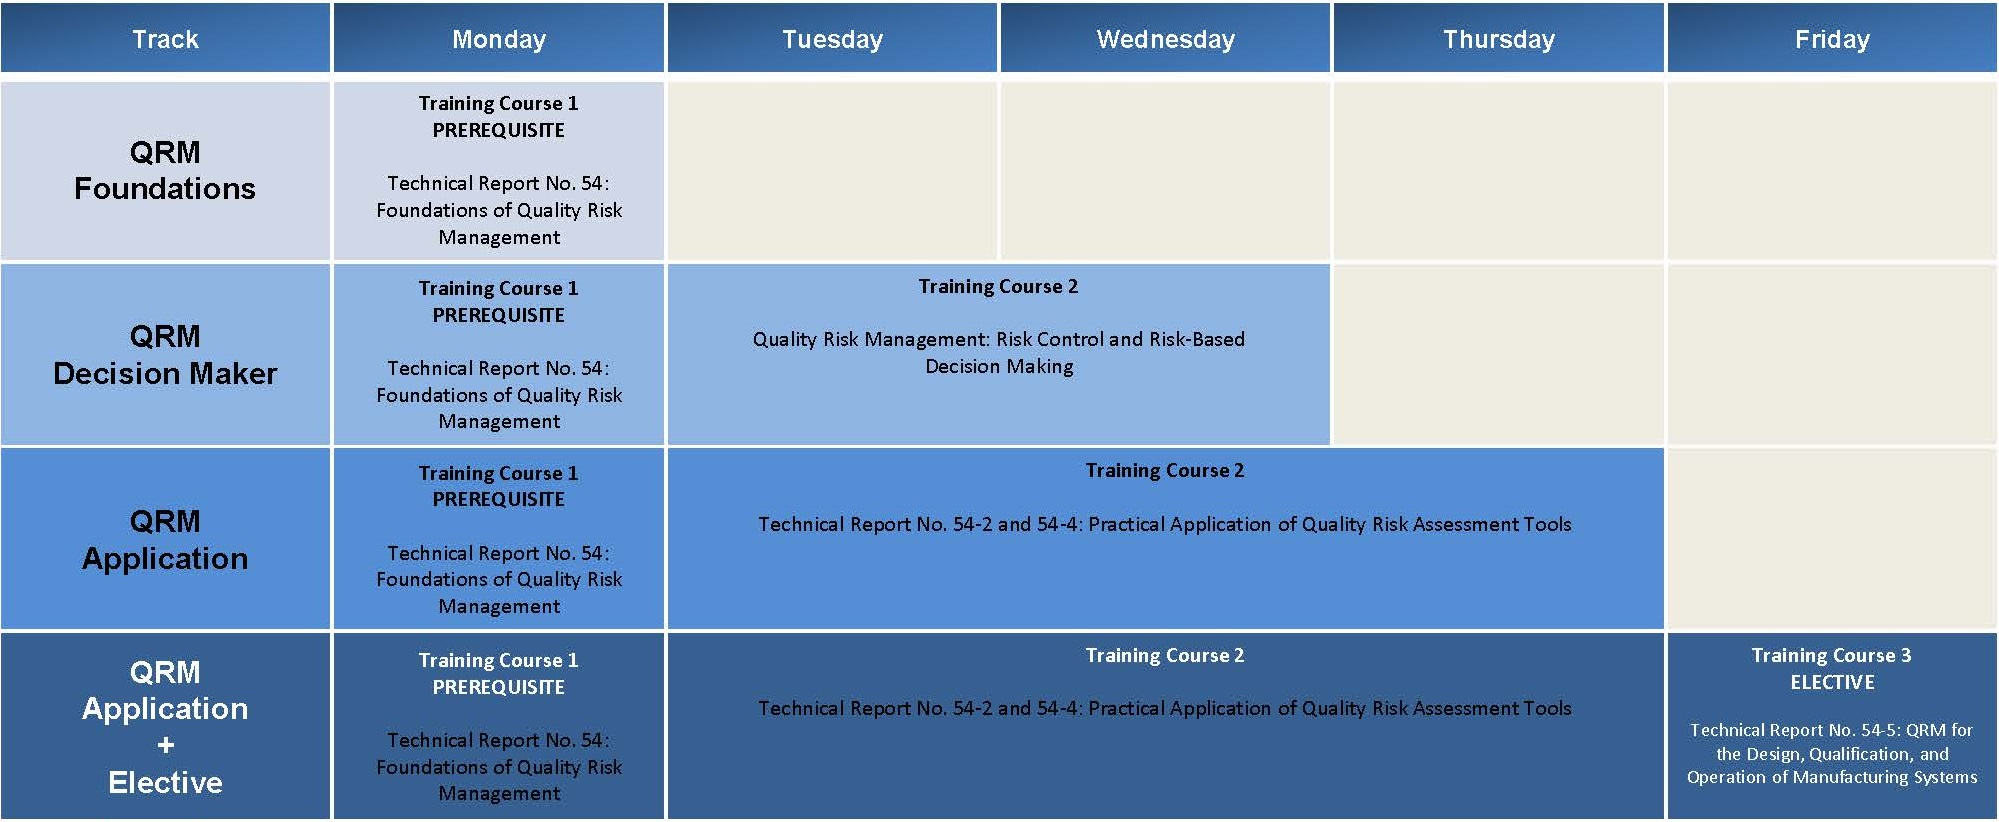 Required Training Courses